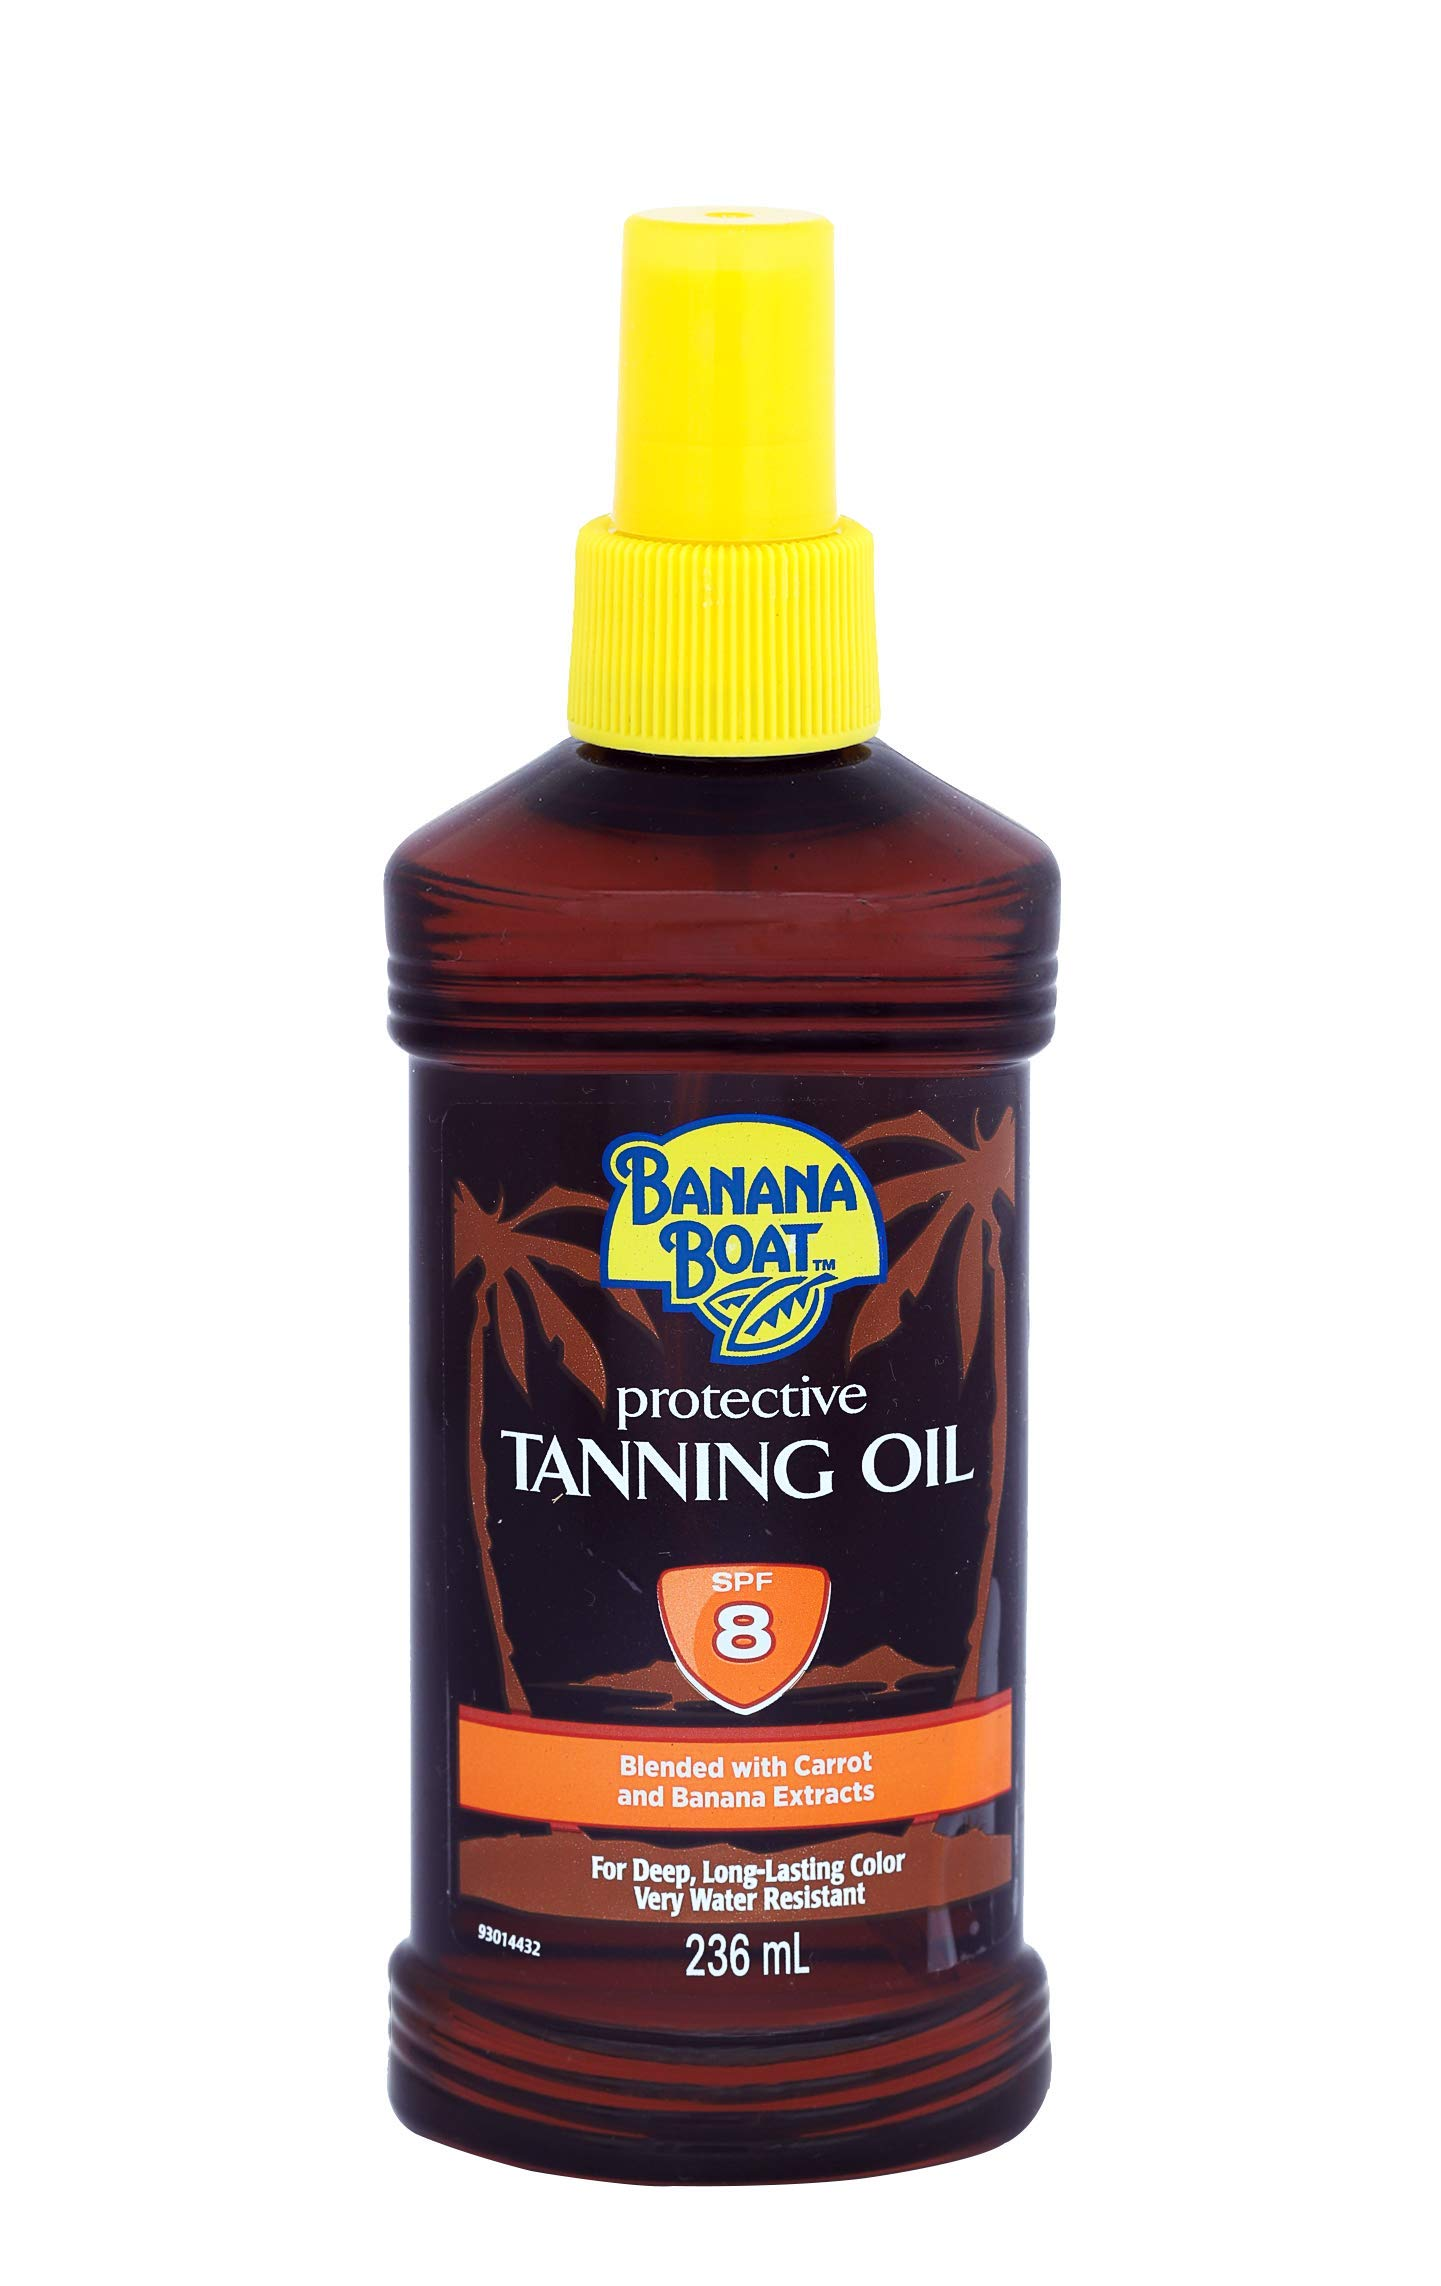 Banana Boat Protective Tanning Oil Spray SPF 8 Sunscreen, 82 Fl Oz